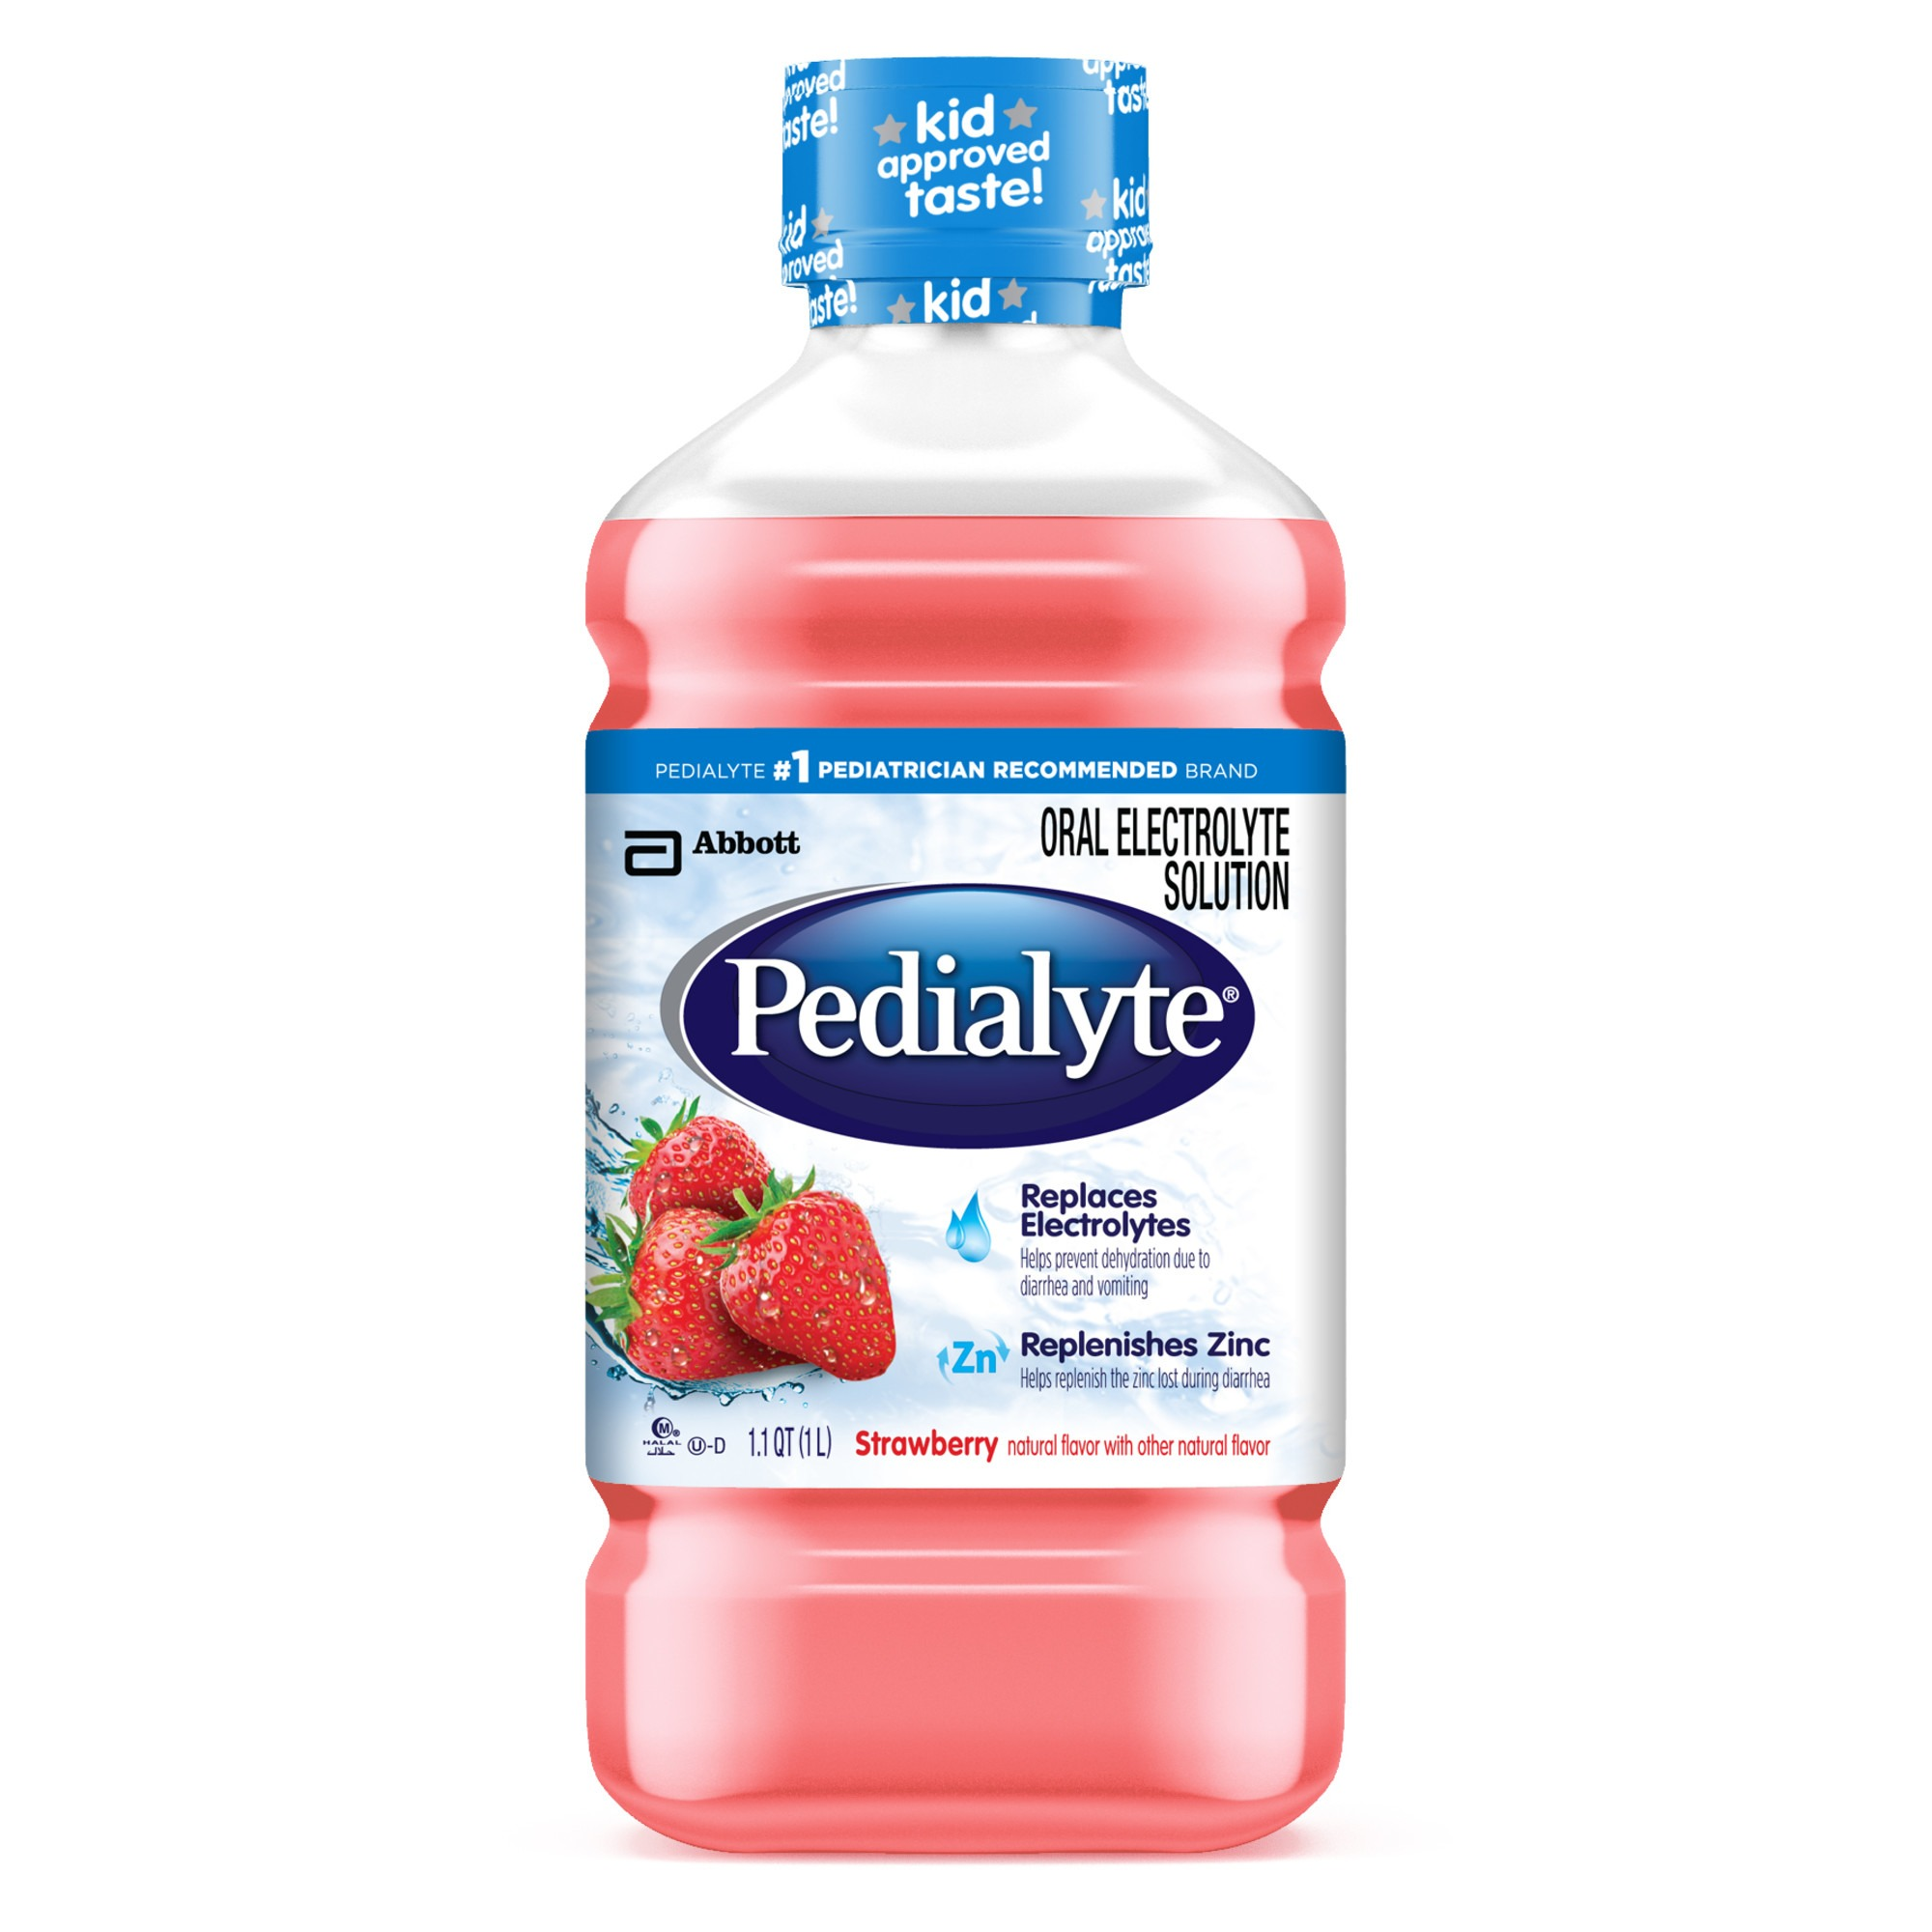 Pedialyte Oral Electrolyte Solution, Strawberry Flavored, 1-L